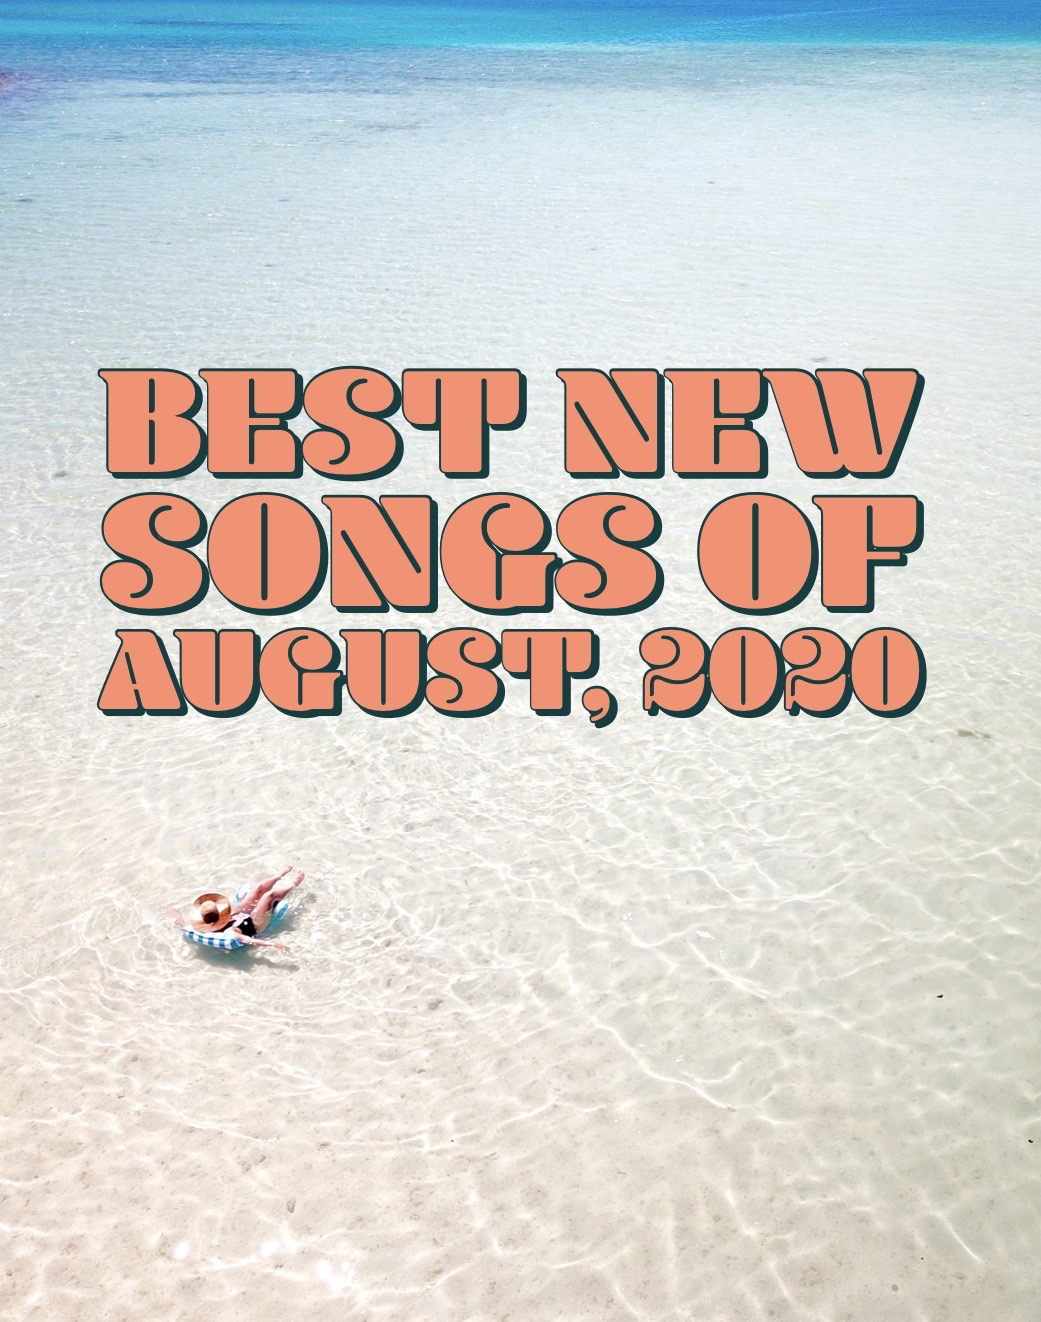 best new song releases of august 2020